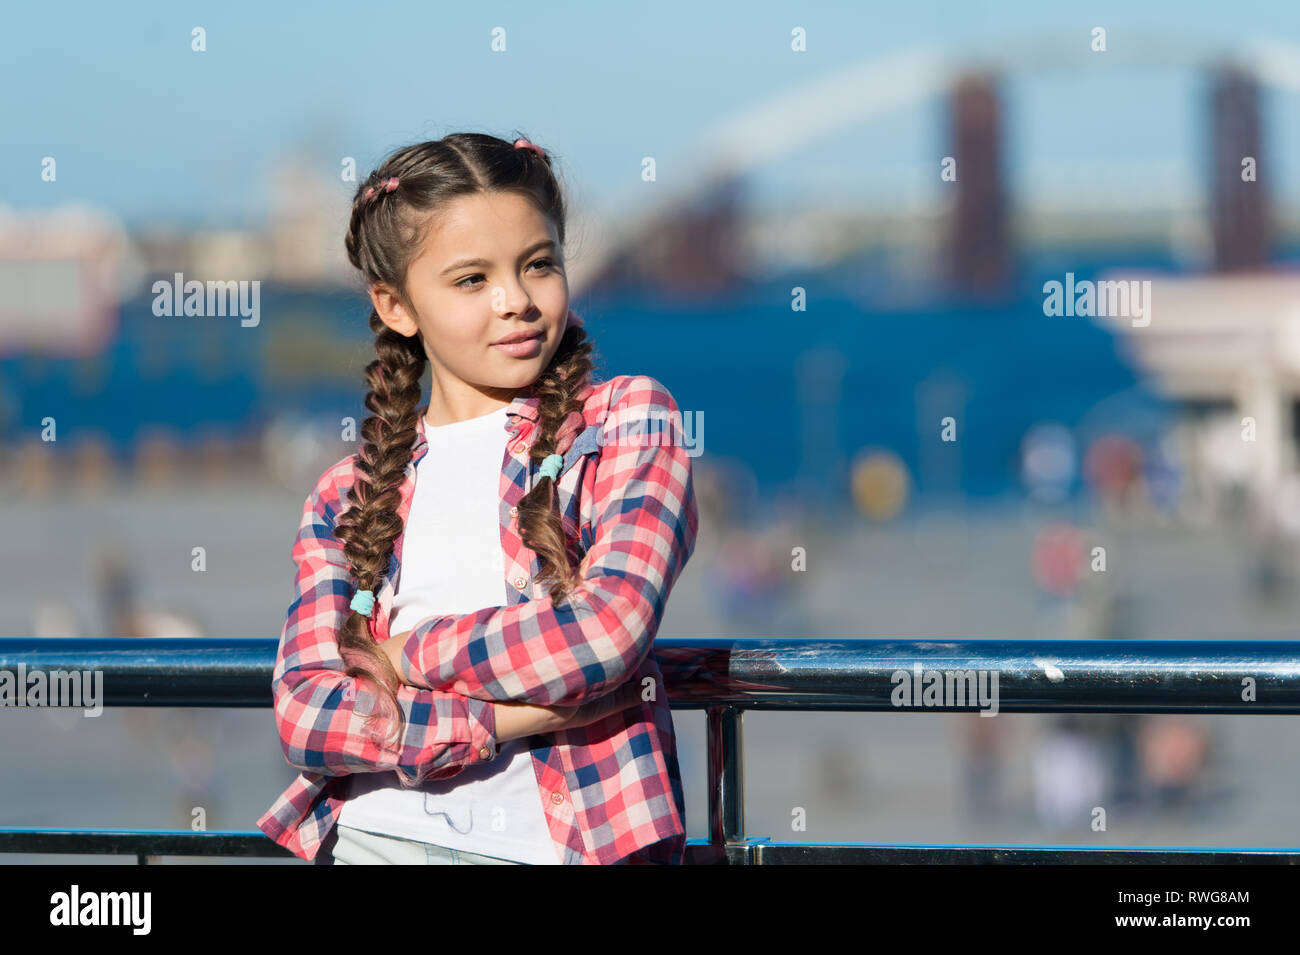 What do on holidays. Sunny day walk. Leisure options. Free time and leisure. Girl cute kid with braids relaxing urban background defocused. Organize activities for teenagers. Vacation and leisure. - Stock Image